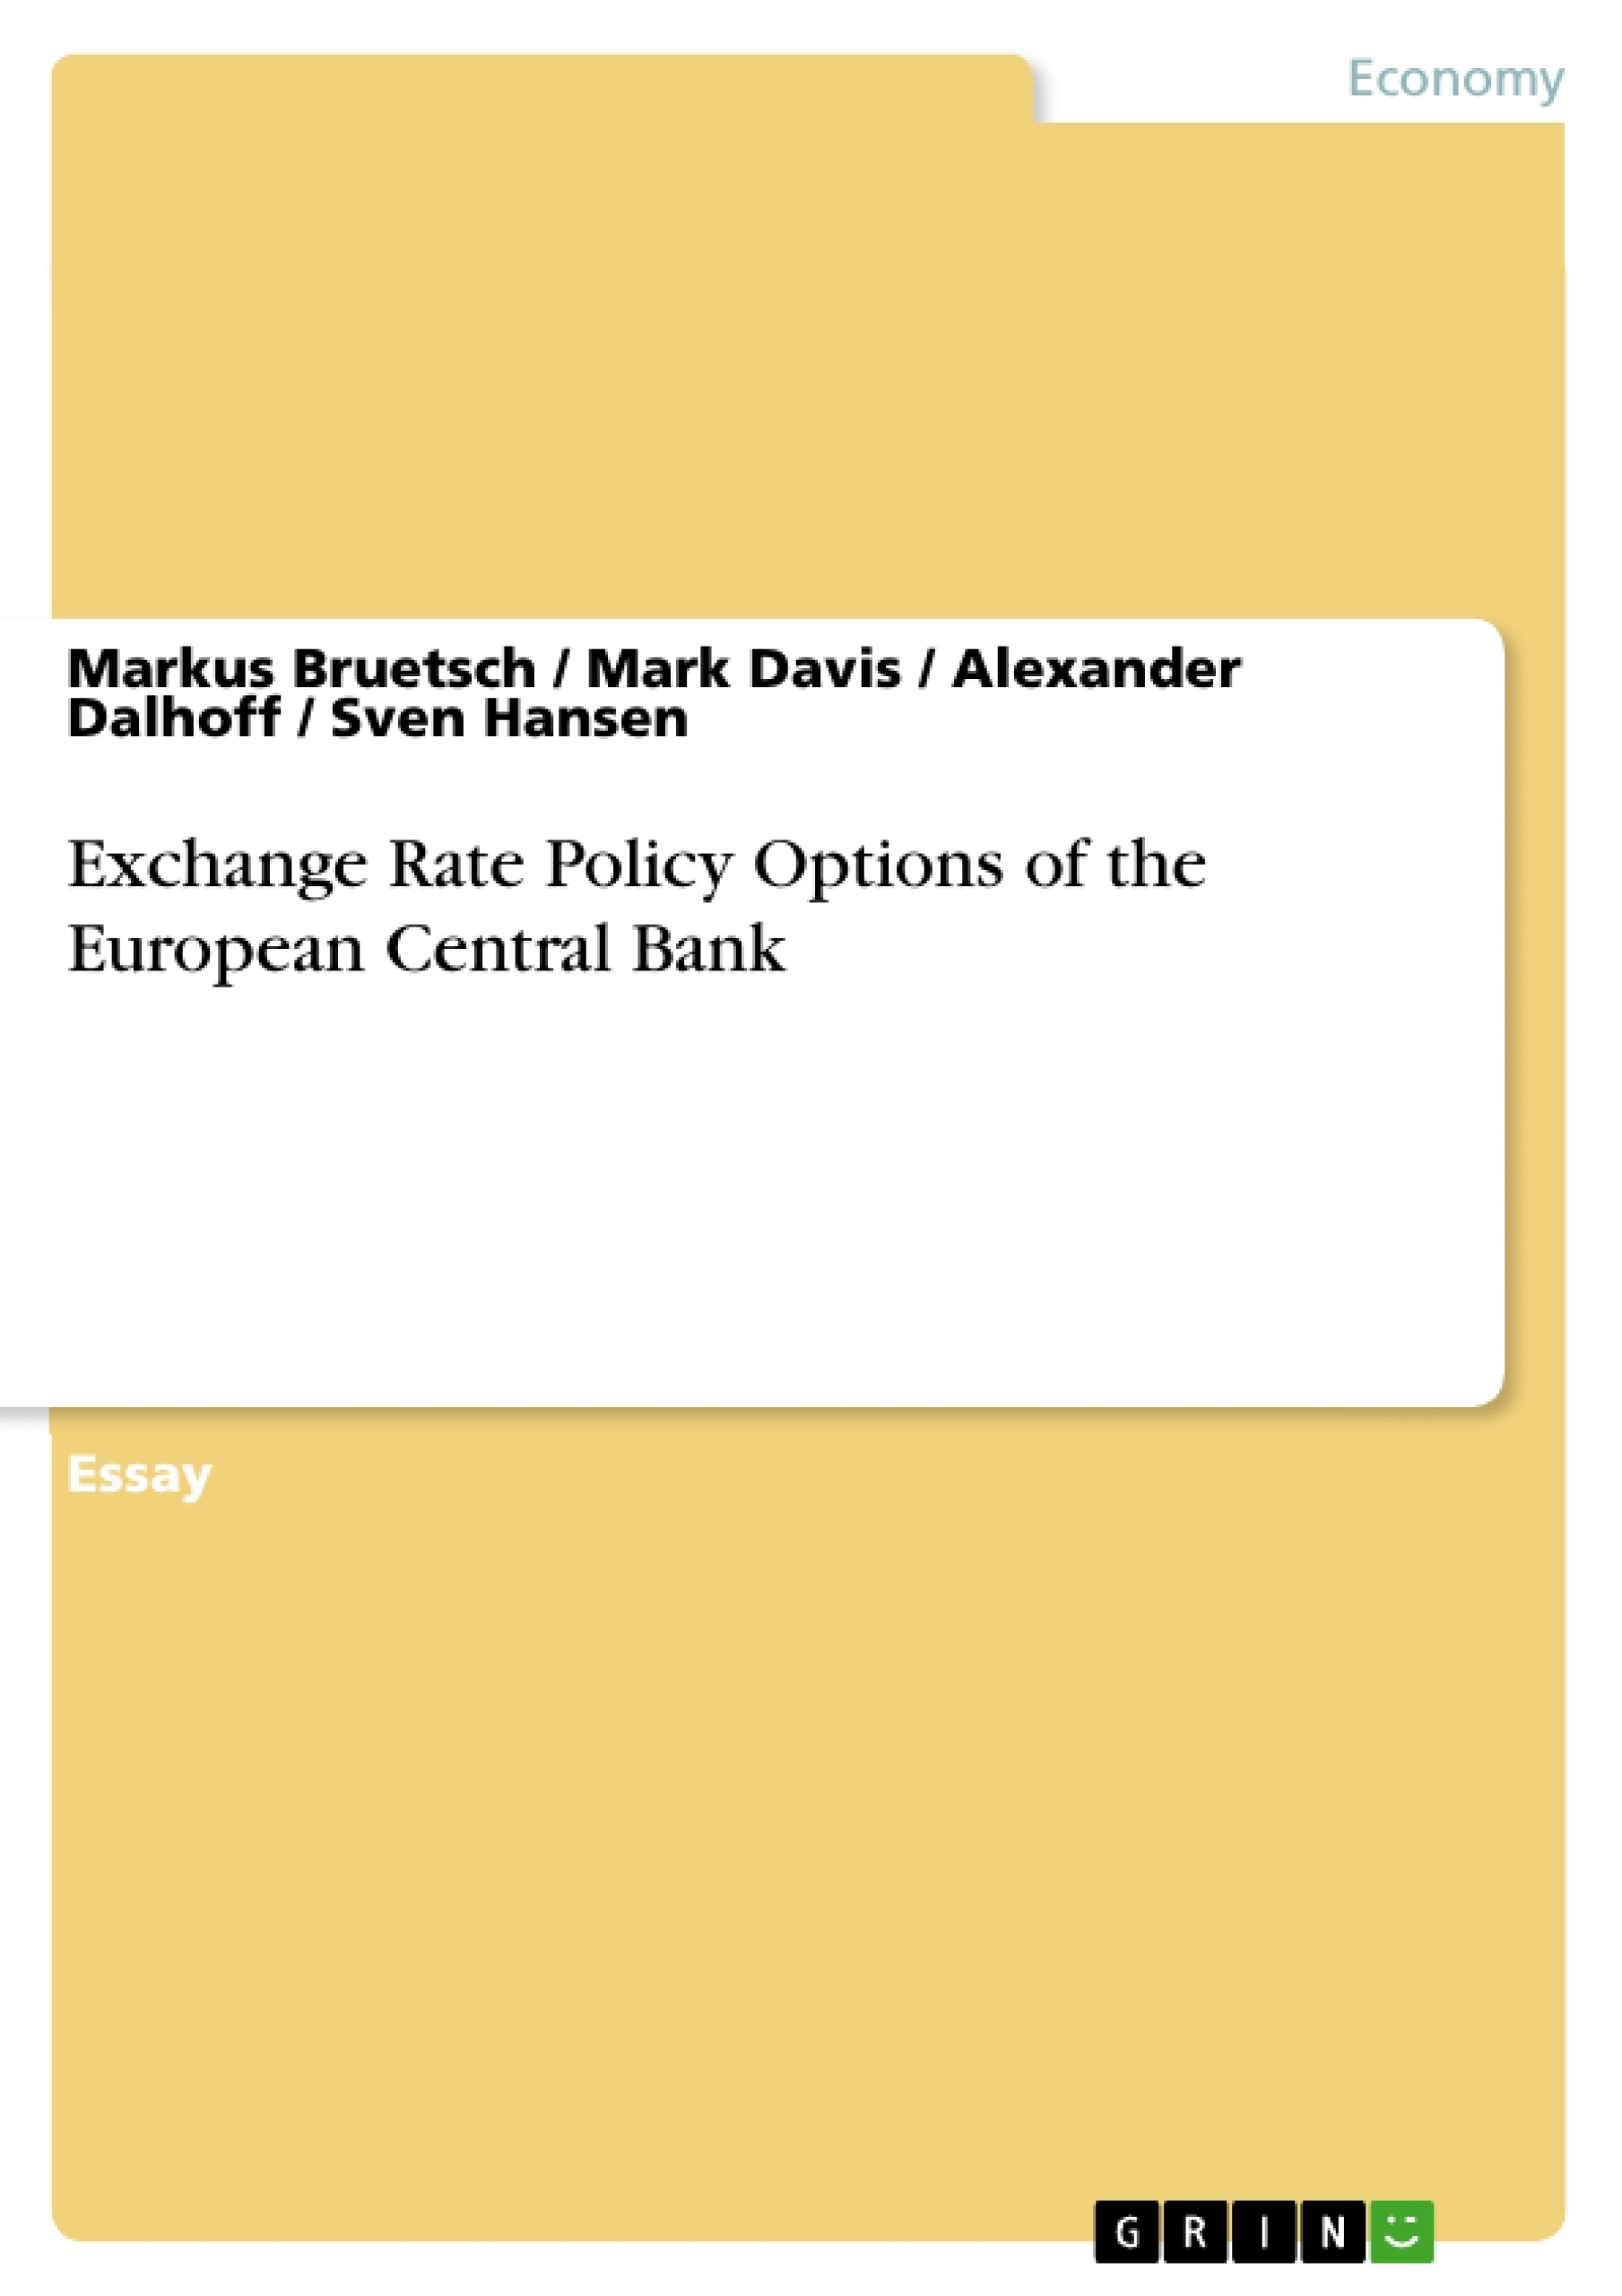 Title: Exchange Rate Policy Options of the European Central Bank